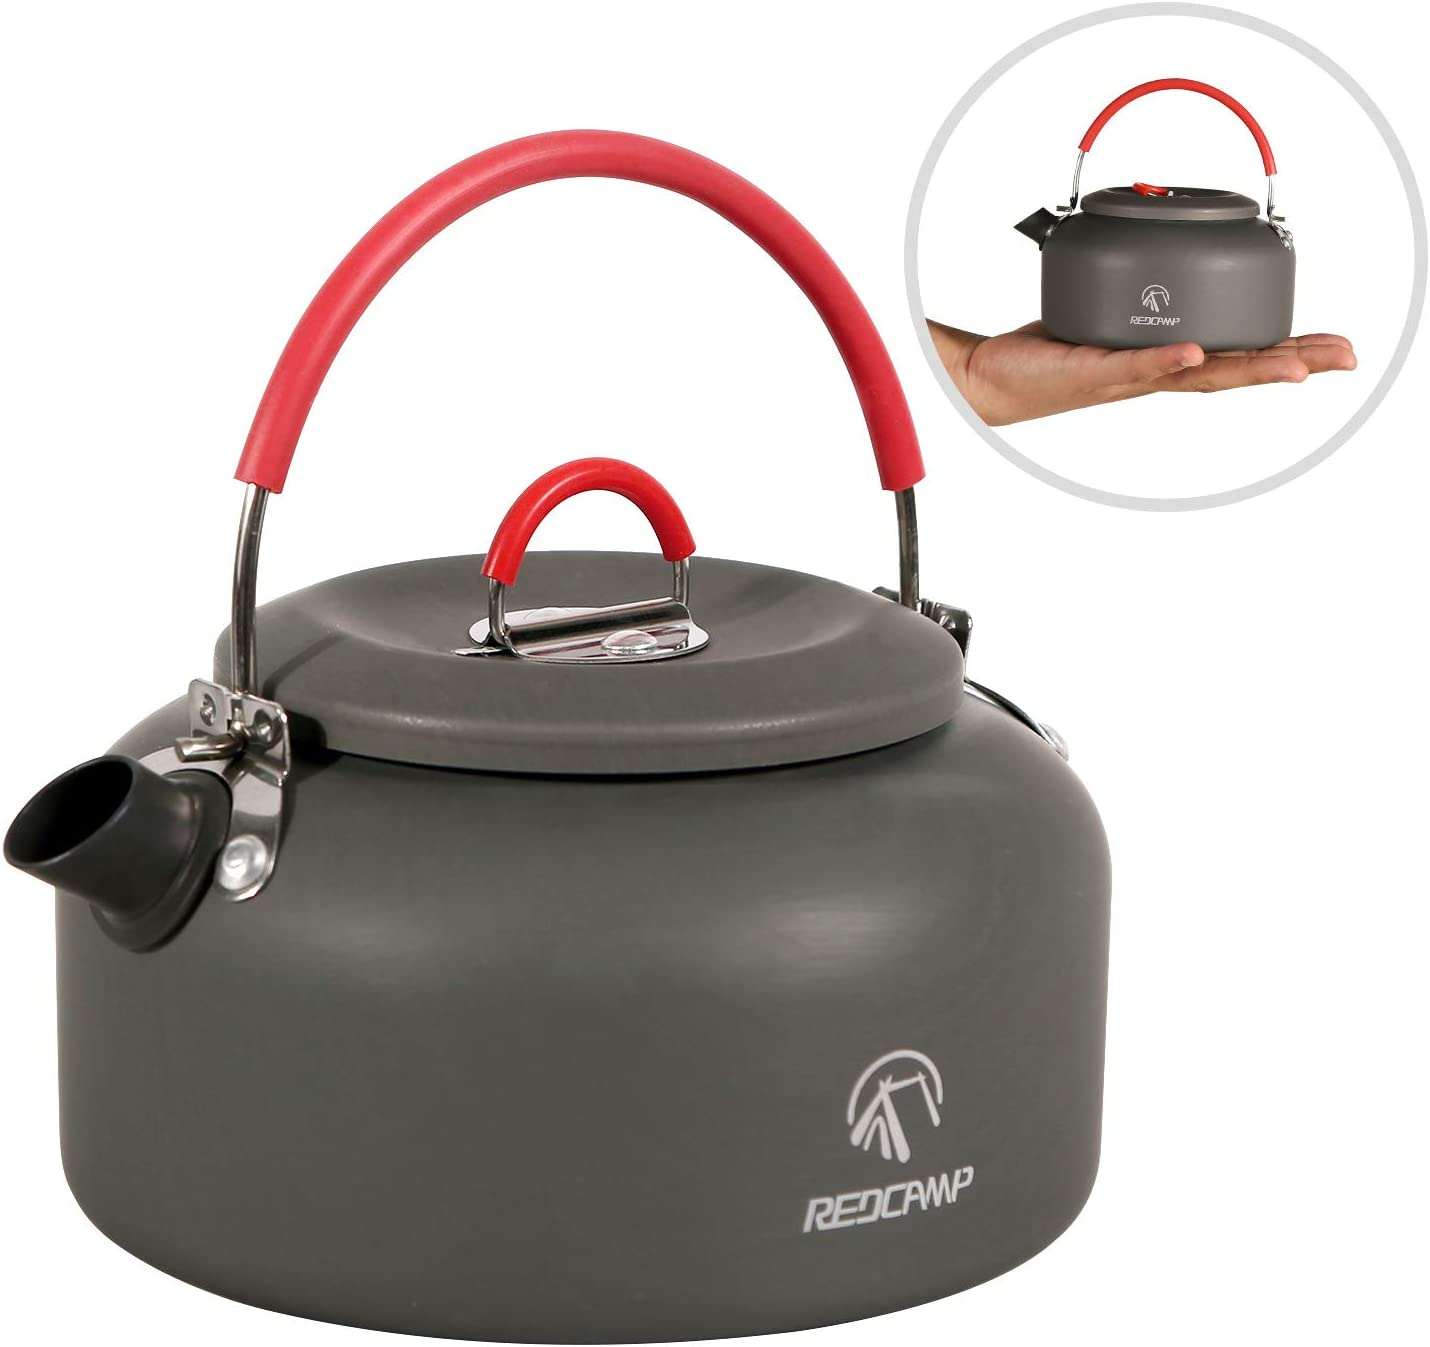 REDCAMP 0.8L/0.9L/1.4L Outdoor Camping Kettle